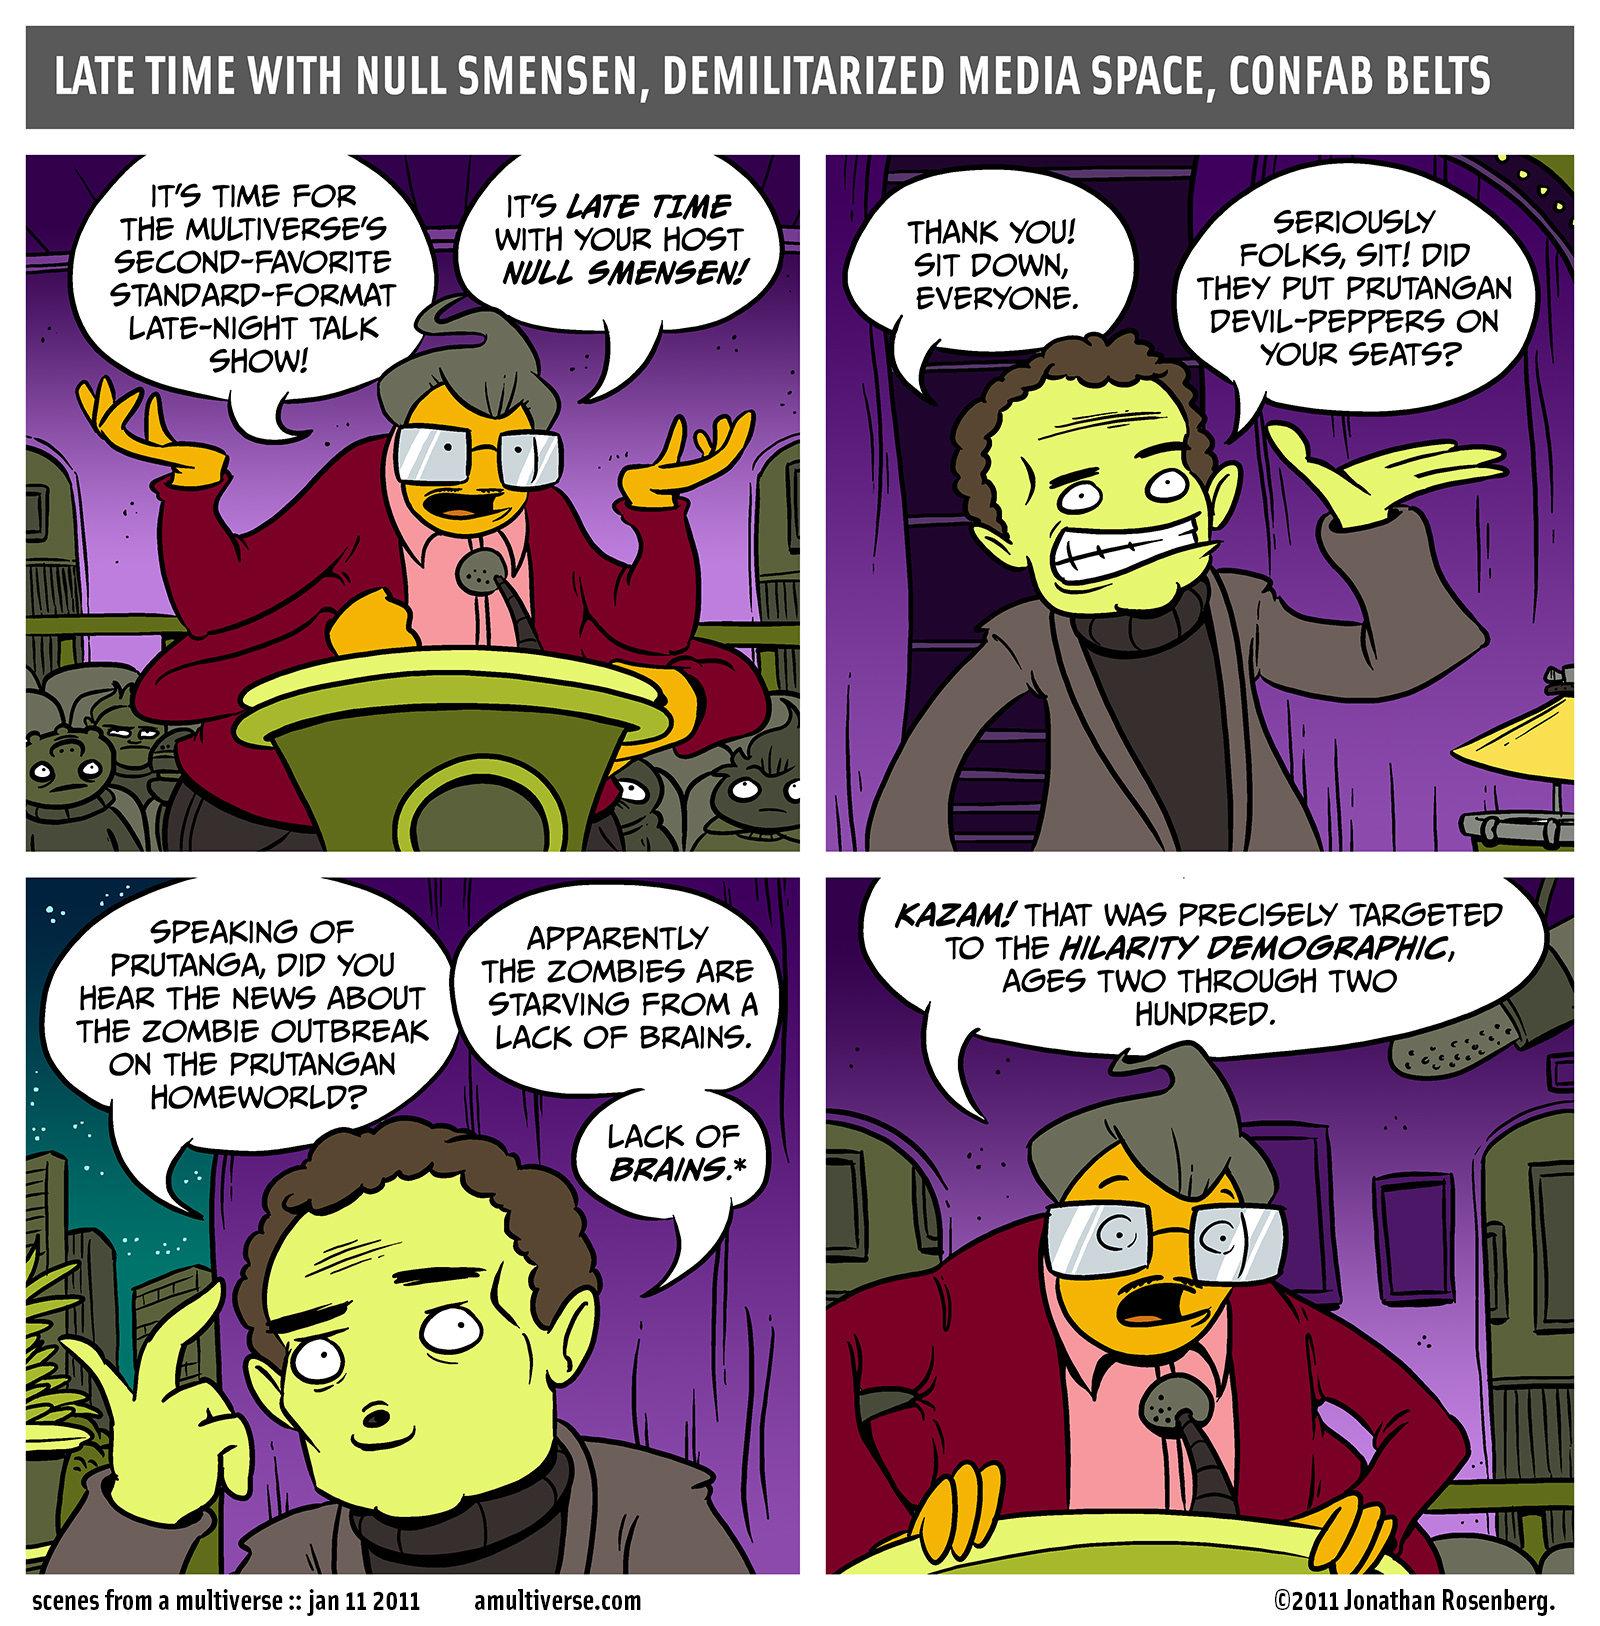 *NB: prutangans use solid state electronics for memory storage and thinking-related tasks and have no organic brains. this joke is in no way offensive to prutangans. this footnote is legal and binding under the current standard talk-show format LNF-3.2.2, ratified last year at DMS MeetingZone, extended details on file via hypernet